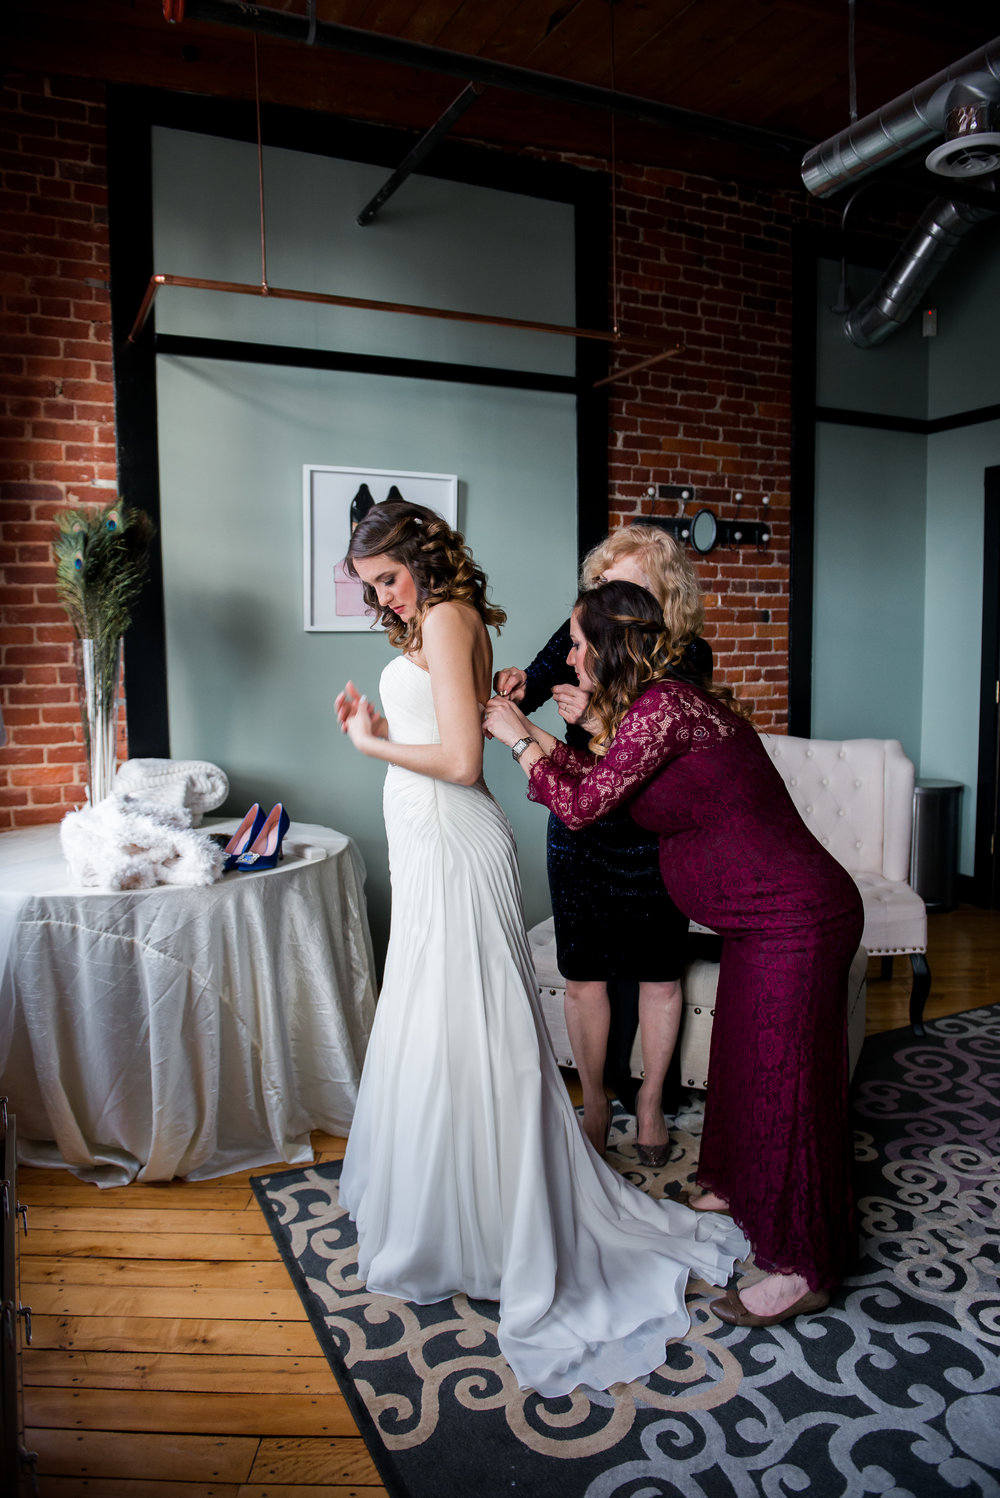 LUV LENS_WEDDING_EMILY AND ANDREW-131.jpg